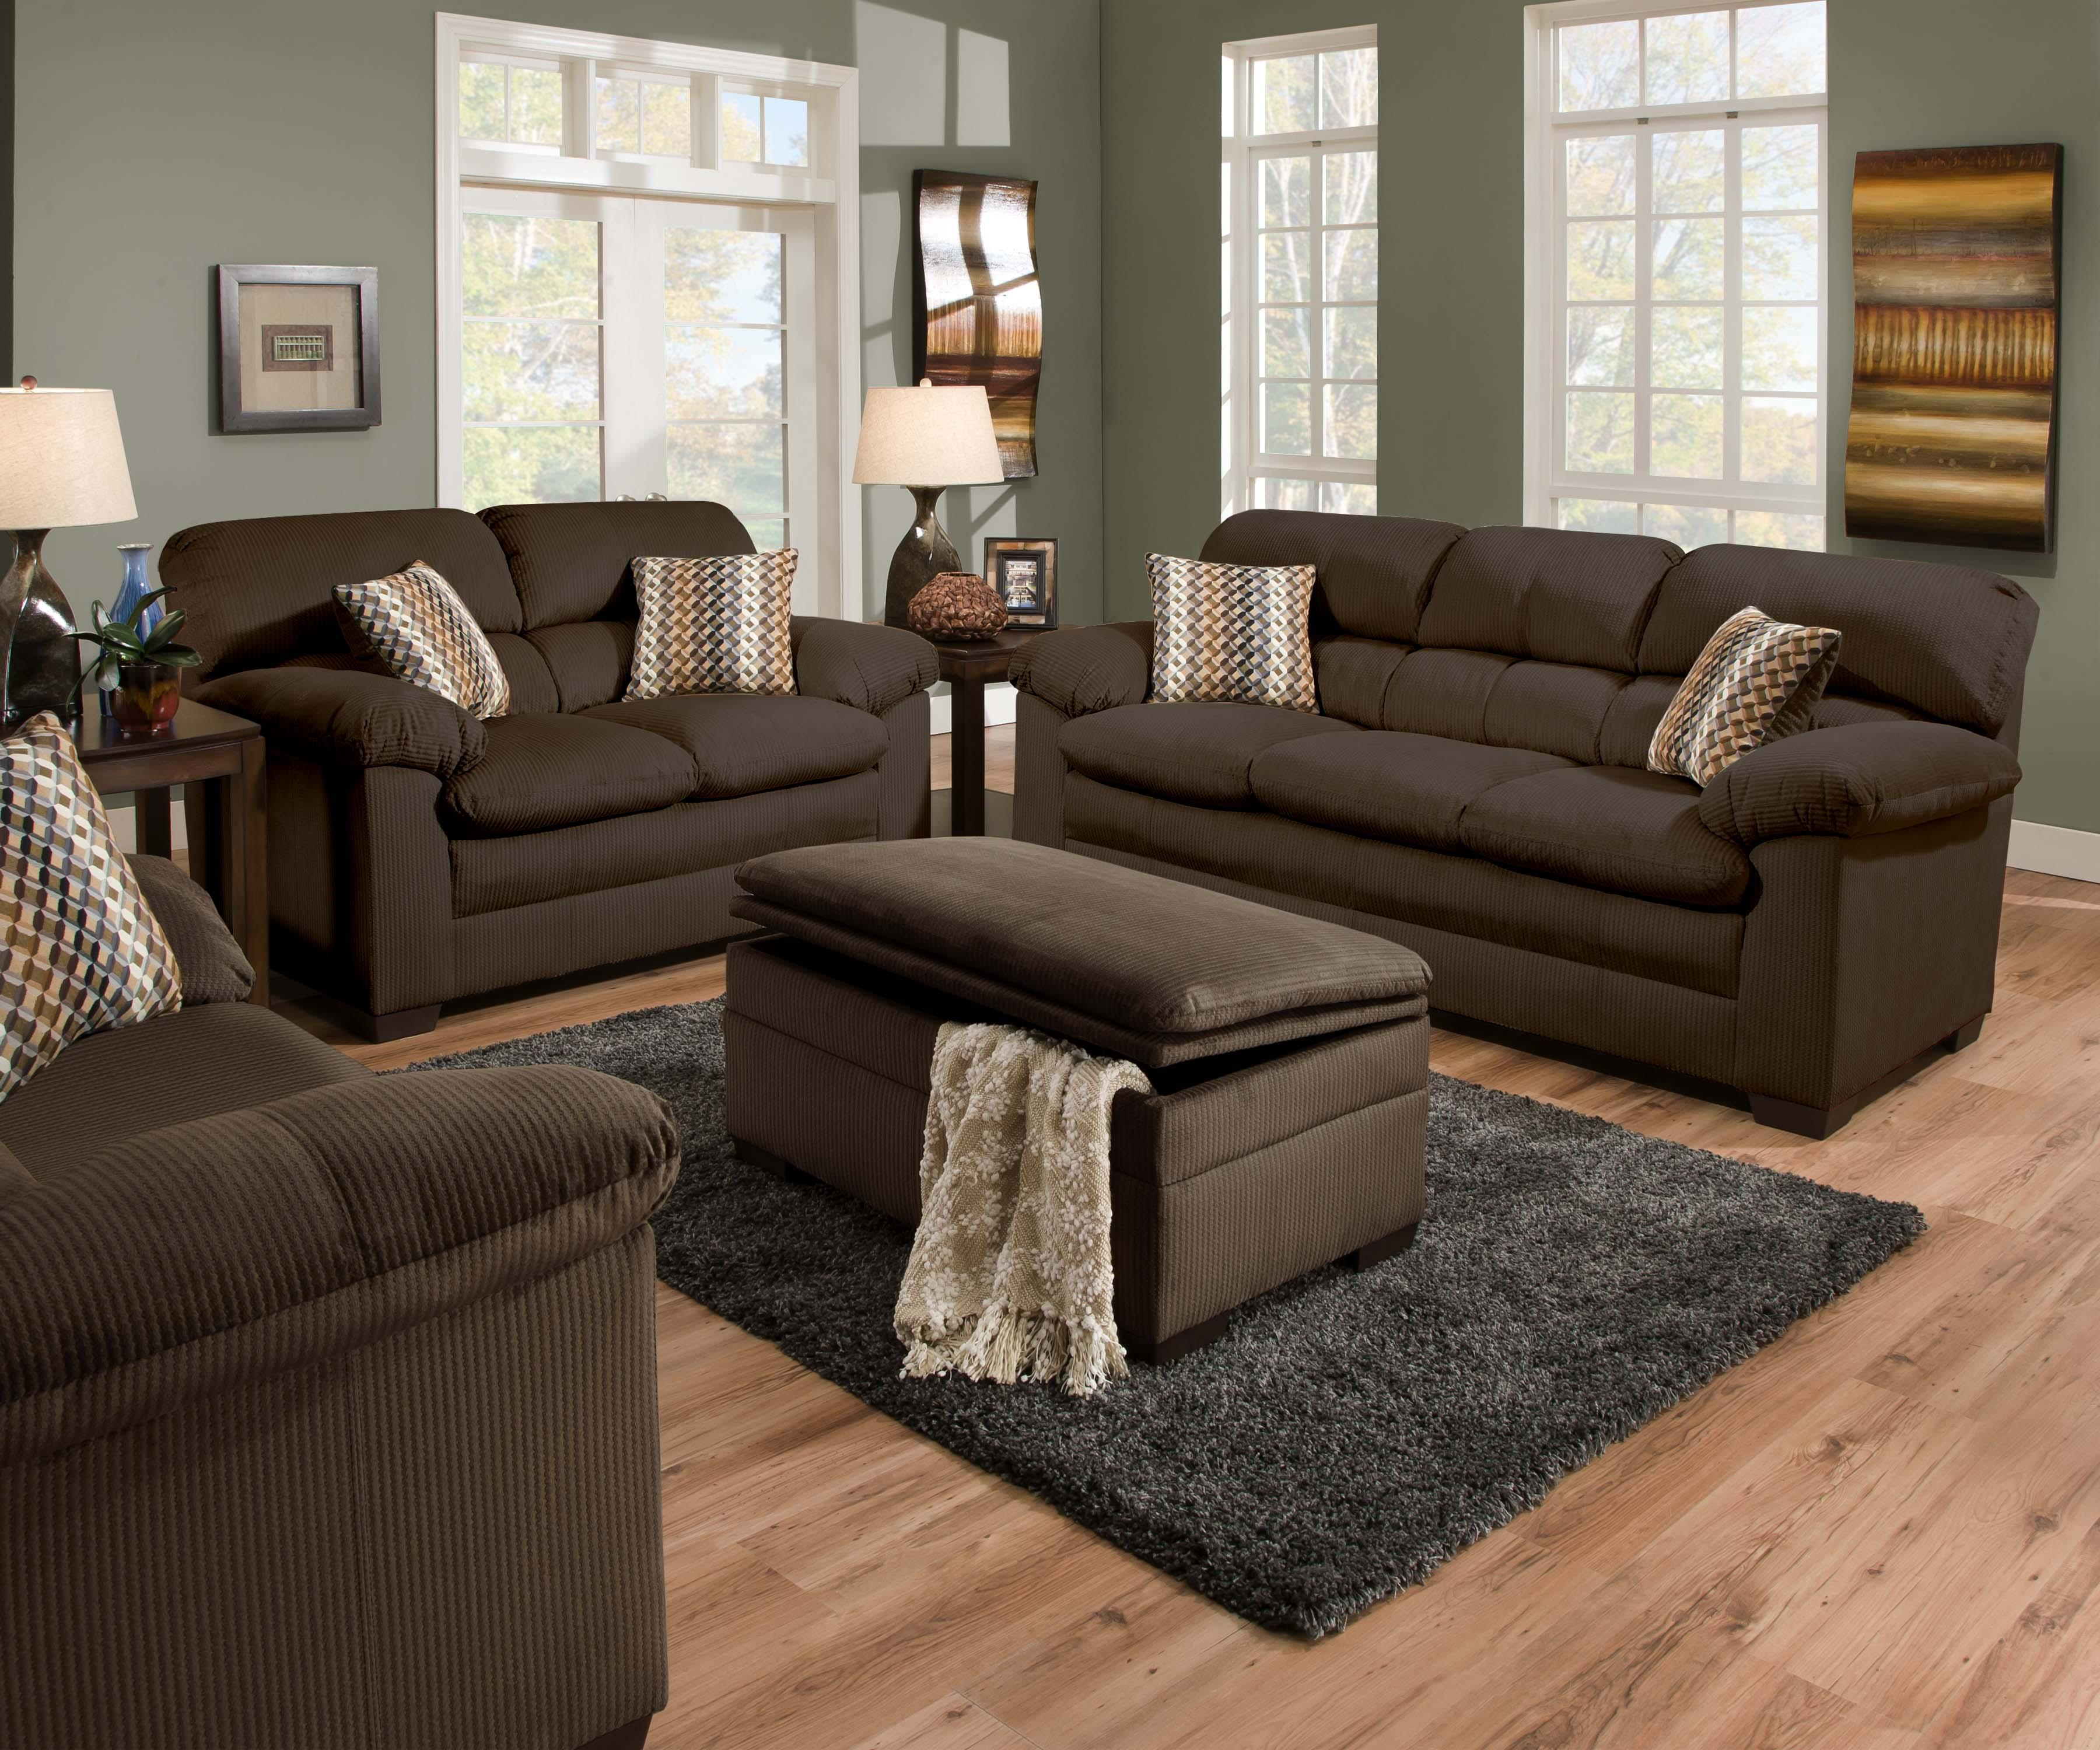 Simmons Upholstery 3685 Casual Sofa With Pillow Arms